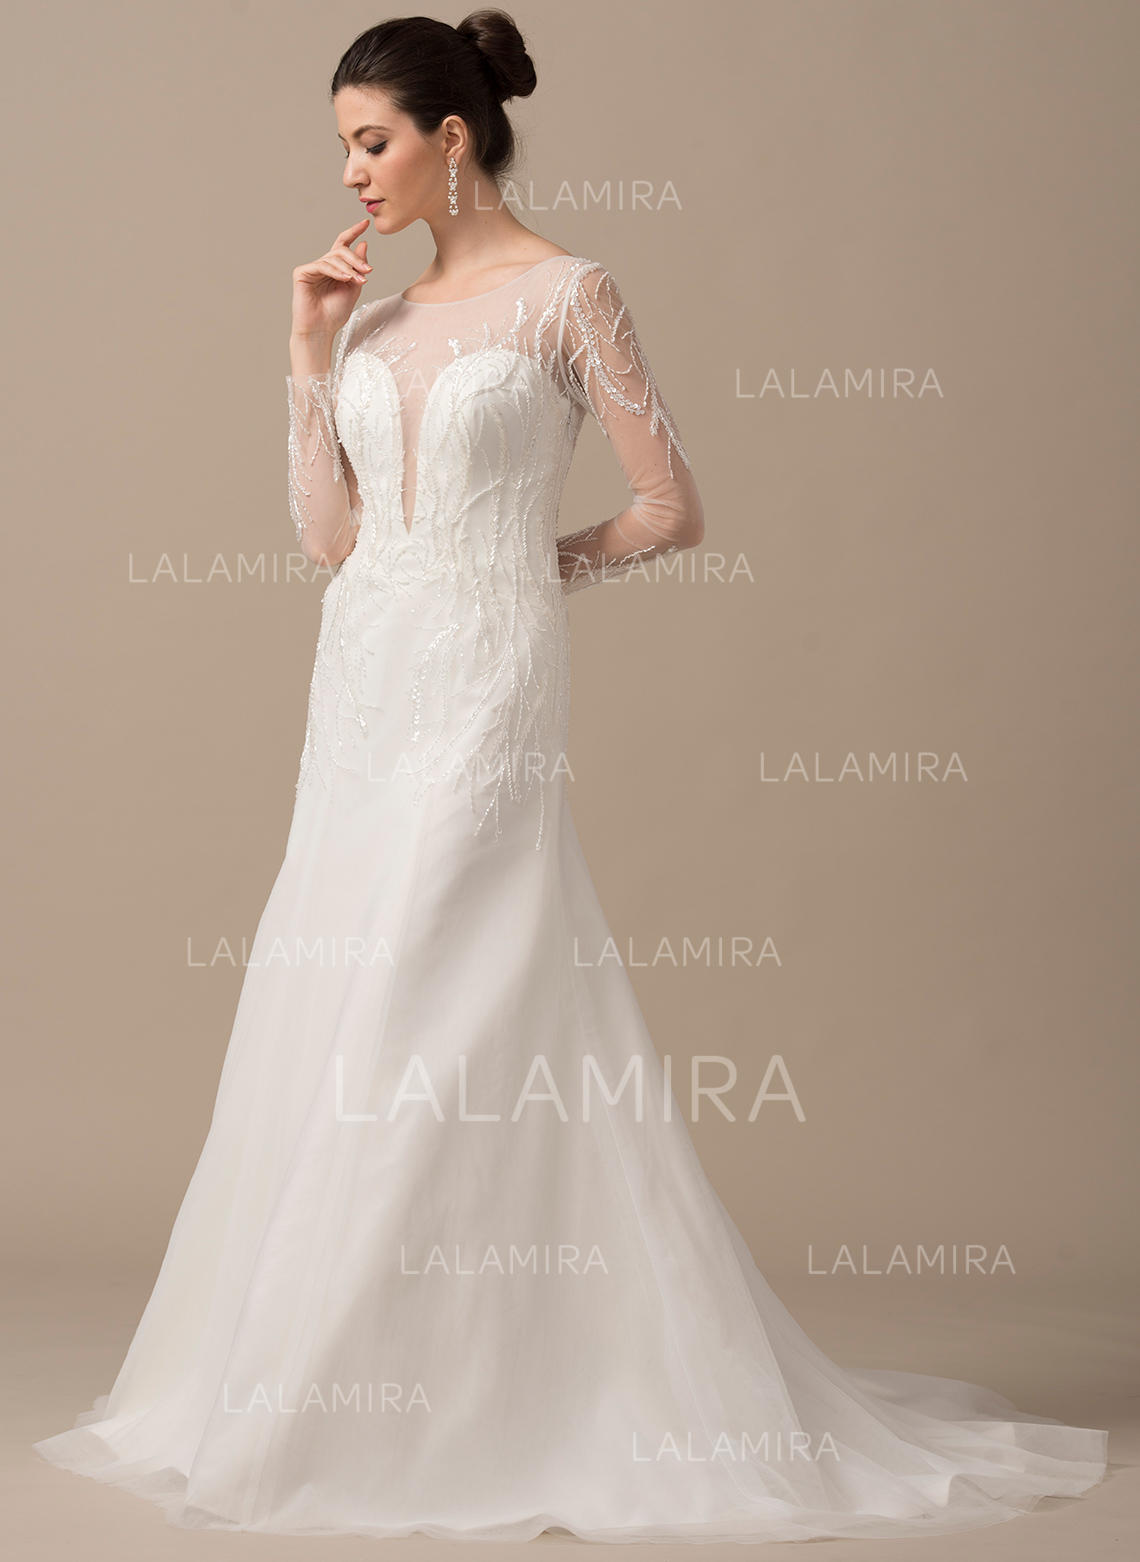 5654dc8181d Chic Scoop A-Line Princess Wedding Dresses Sweep Train Tulle Long Sleeves  (002210632. Loading zoom